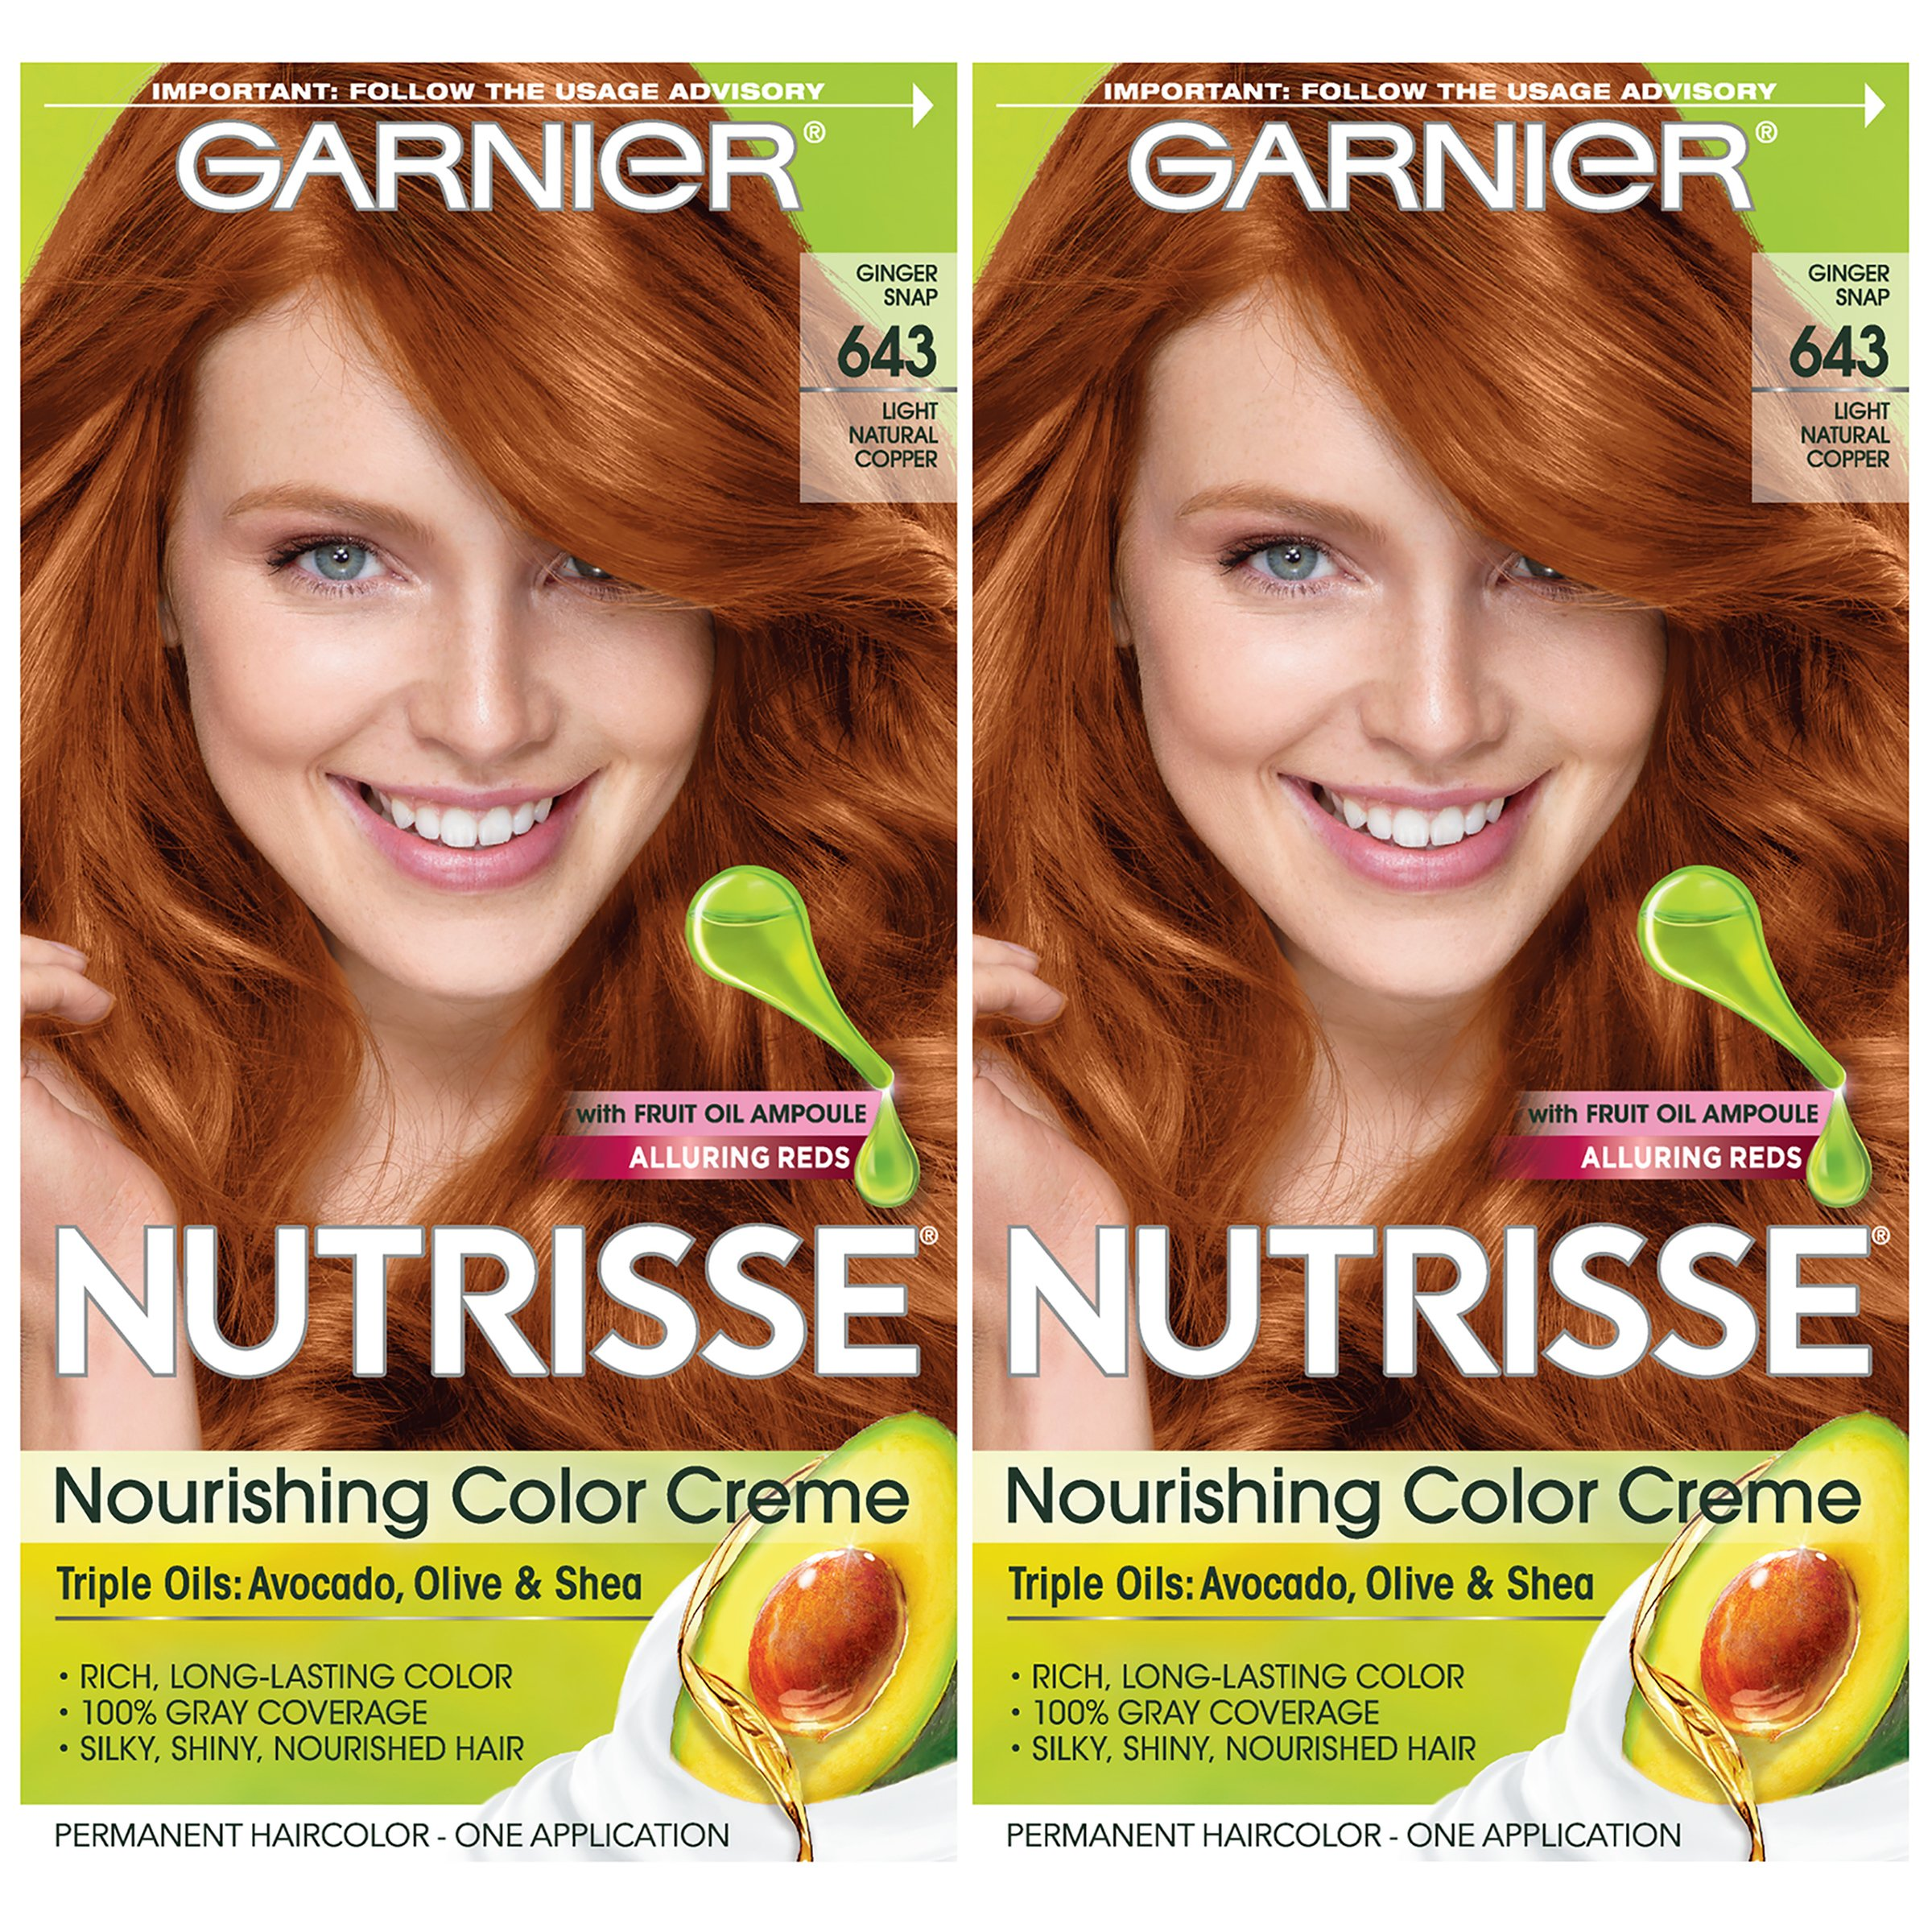 Garnier Hair Color Nutrisse Nourishing Creme, 643 Light Natural Copper, 2 Count by Garnier